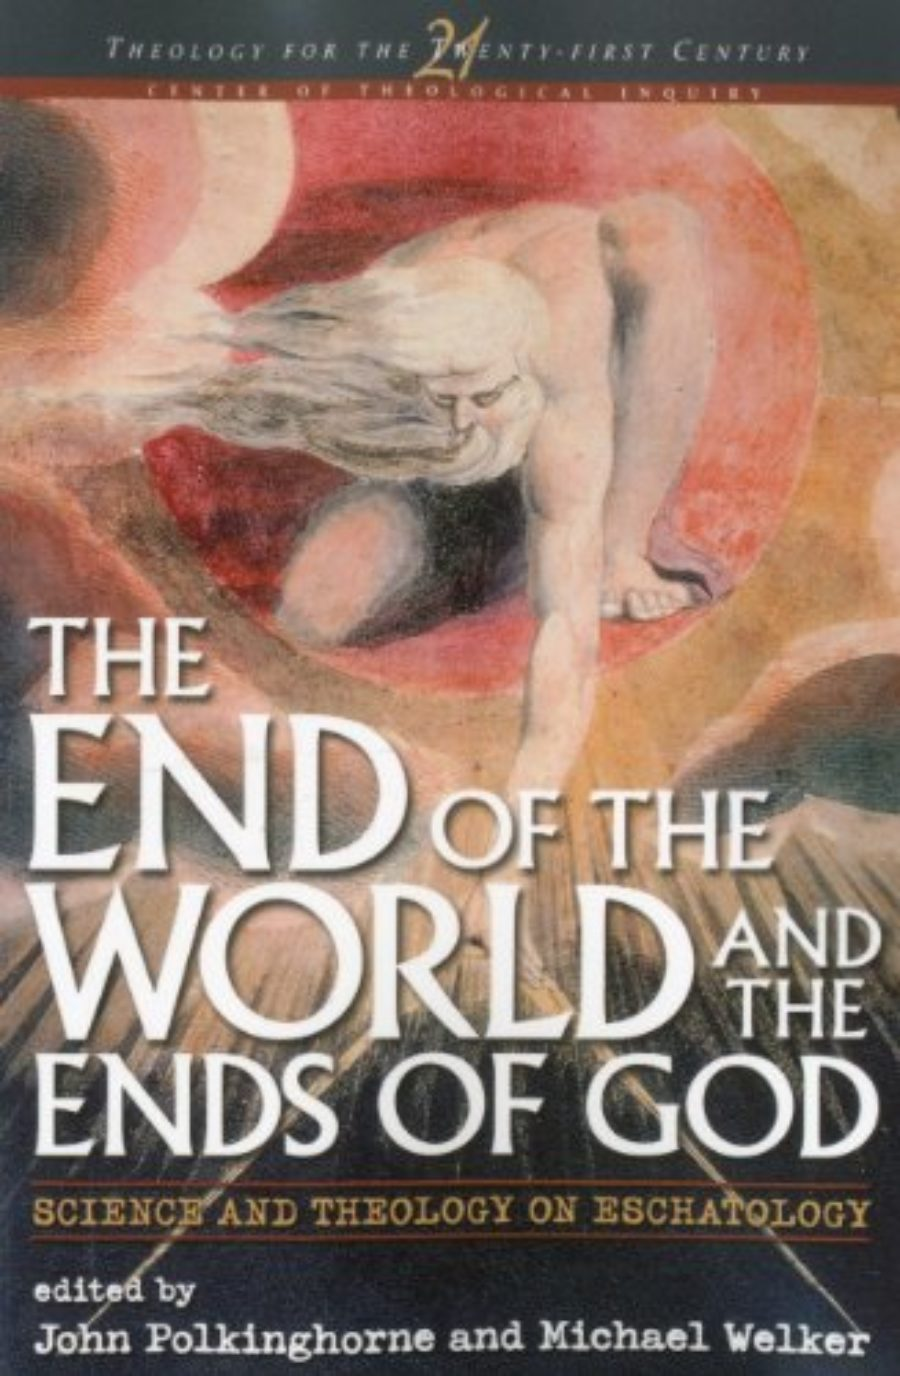 Cover of The End of the World and the Ends of God: Science and Theology on Eschatology (Theology for the 21st Century)